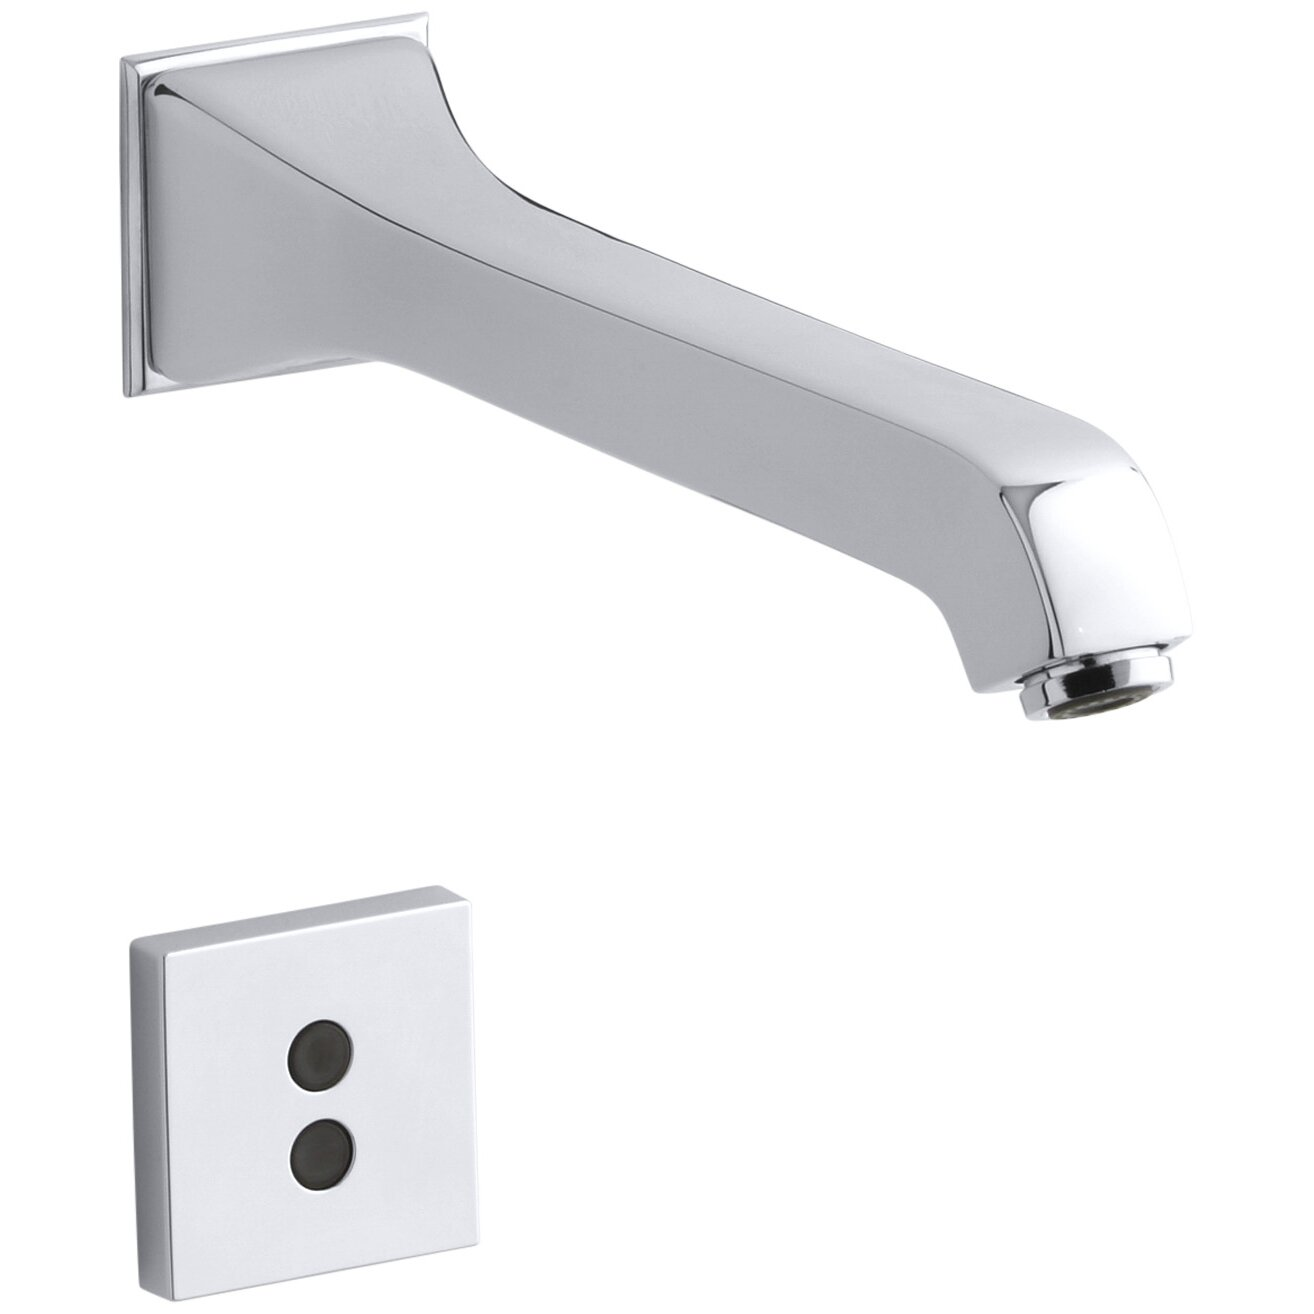 kohler memoirs wall-mount commercial bathroom sink faucet with 8-3